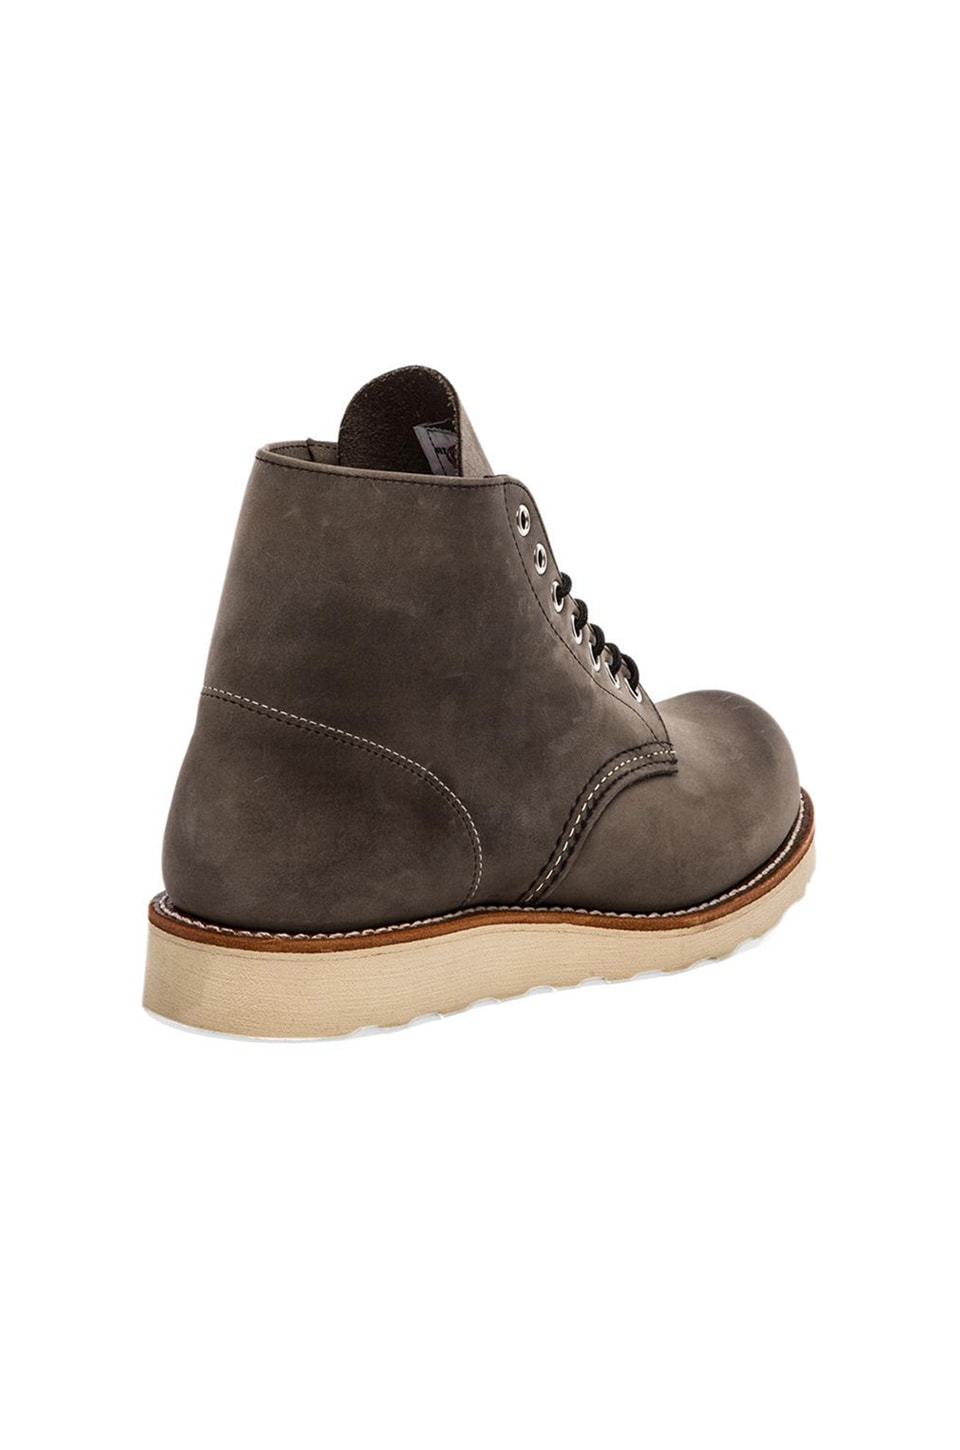 "Red Wing Shoes Classic 6"" Round Toe in Gray"